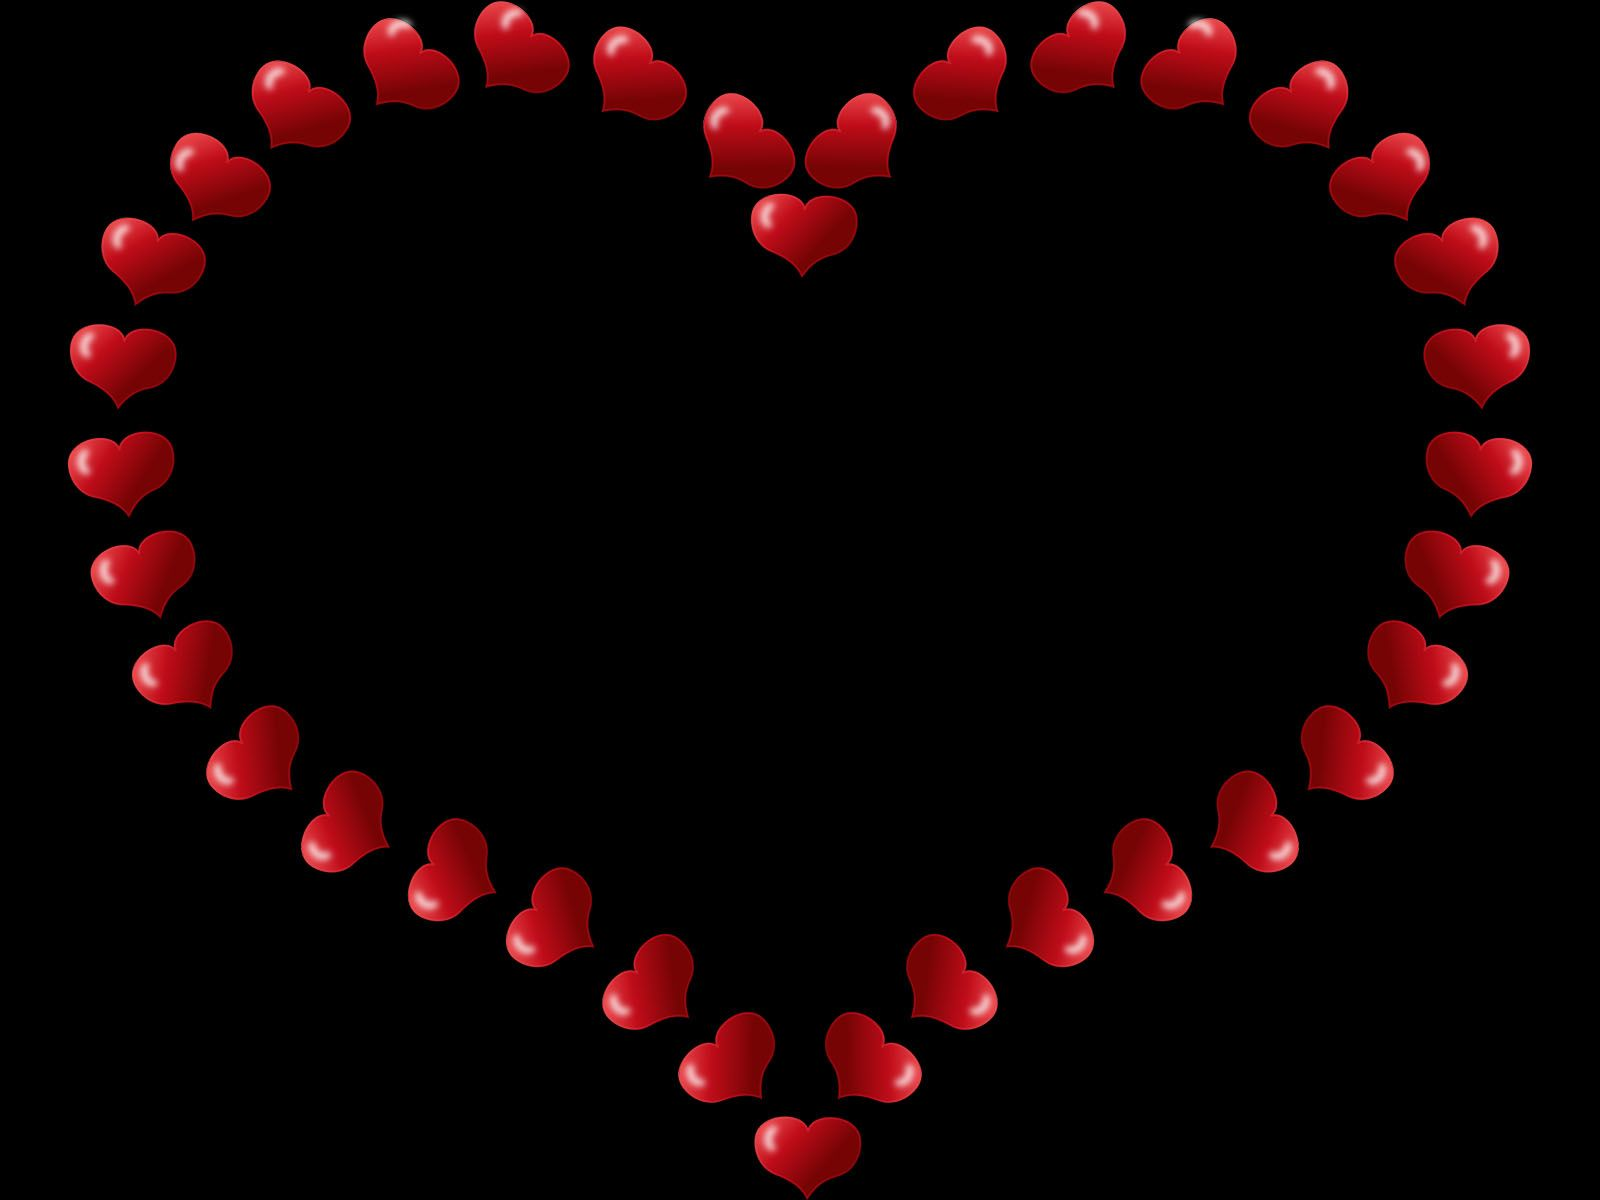 Red Heart Frame Ppt Backgrounds Love Ppt Frames Backgrounds Love Heart Gif Animated Heart Gif Heart Gif